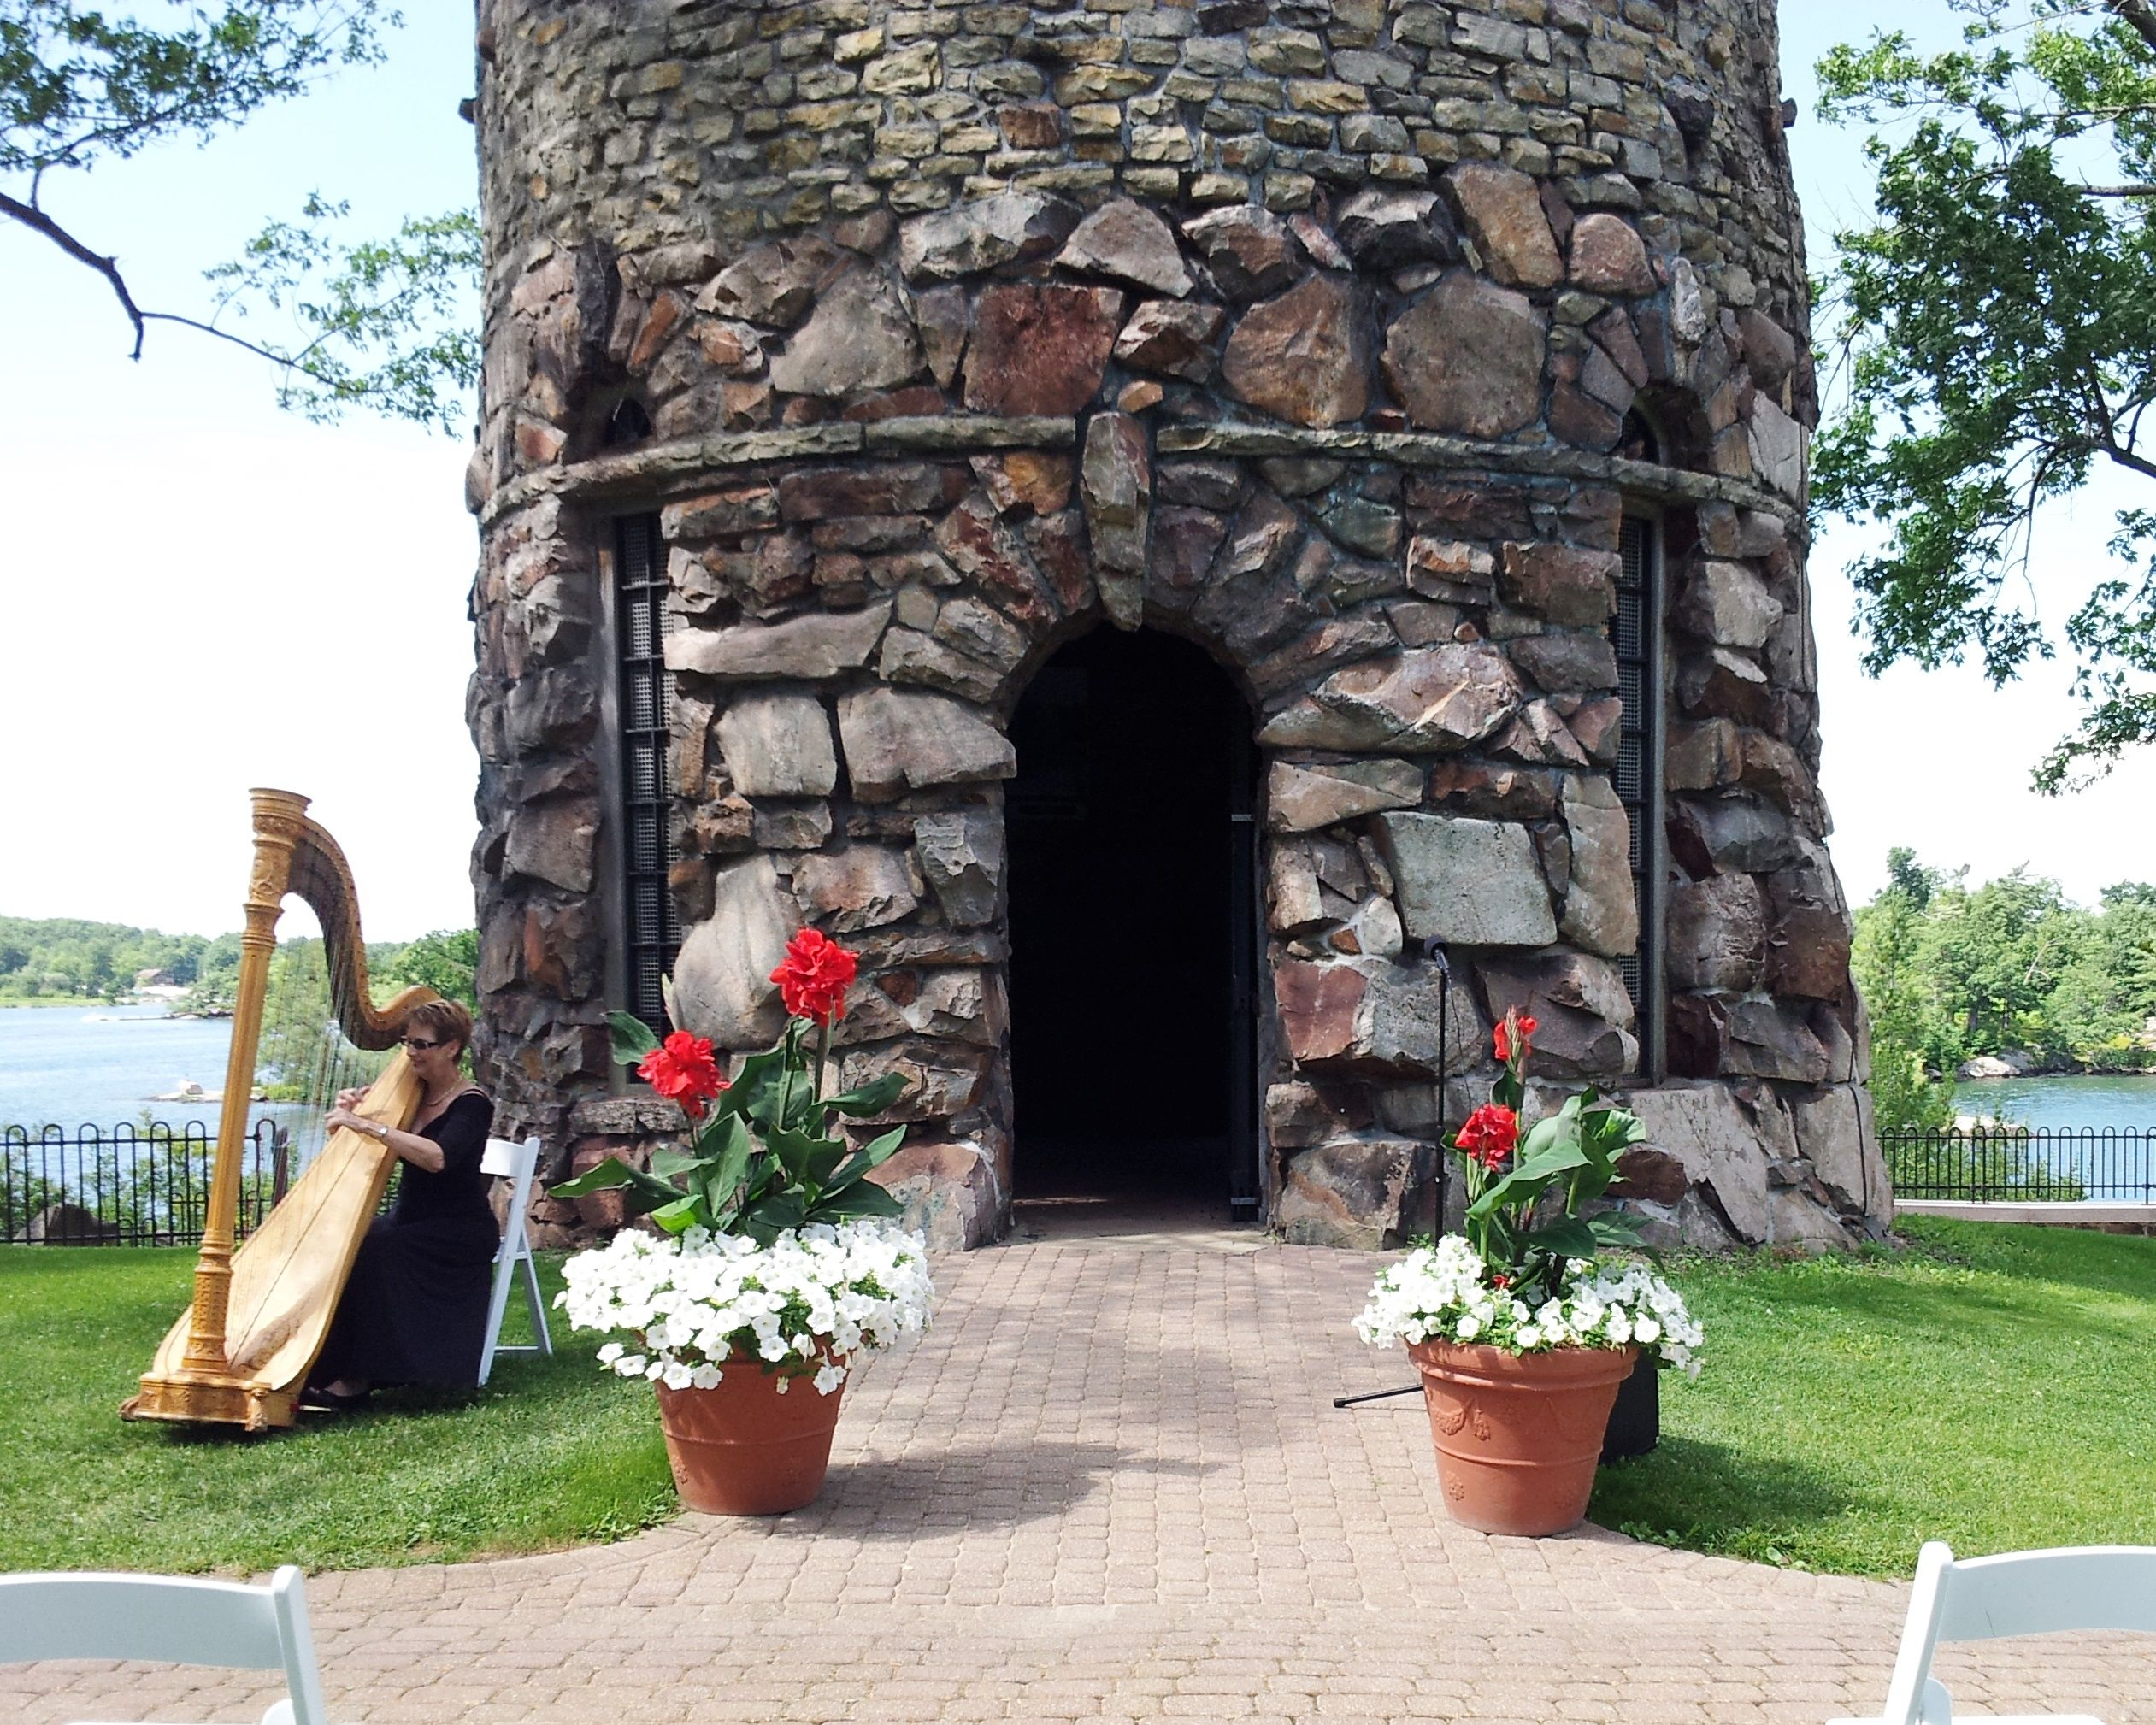 beautiful wedding at the dove cote at romantic boldt castle in 1000 islands new york